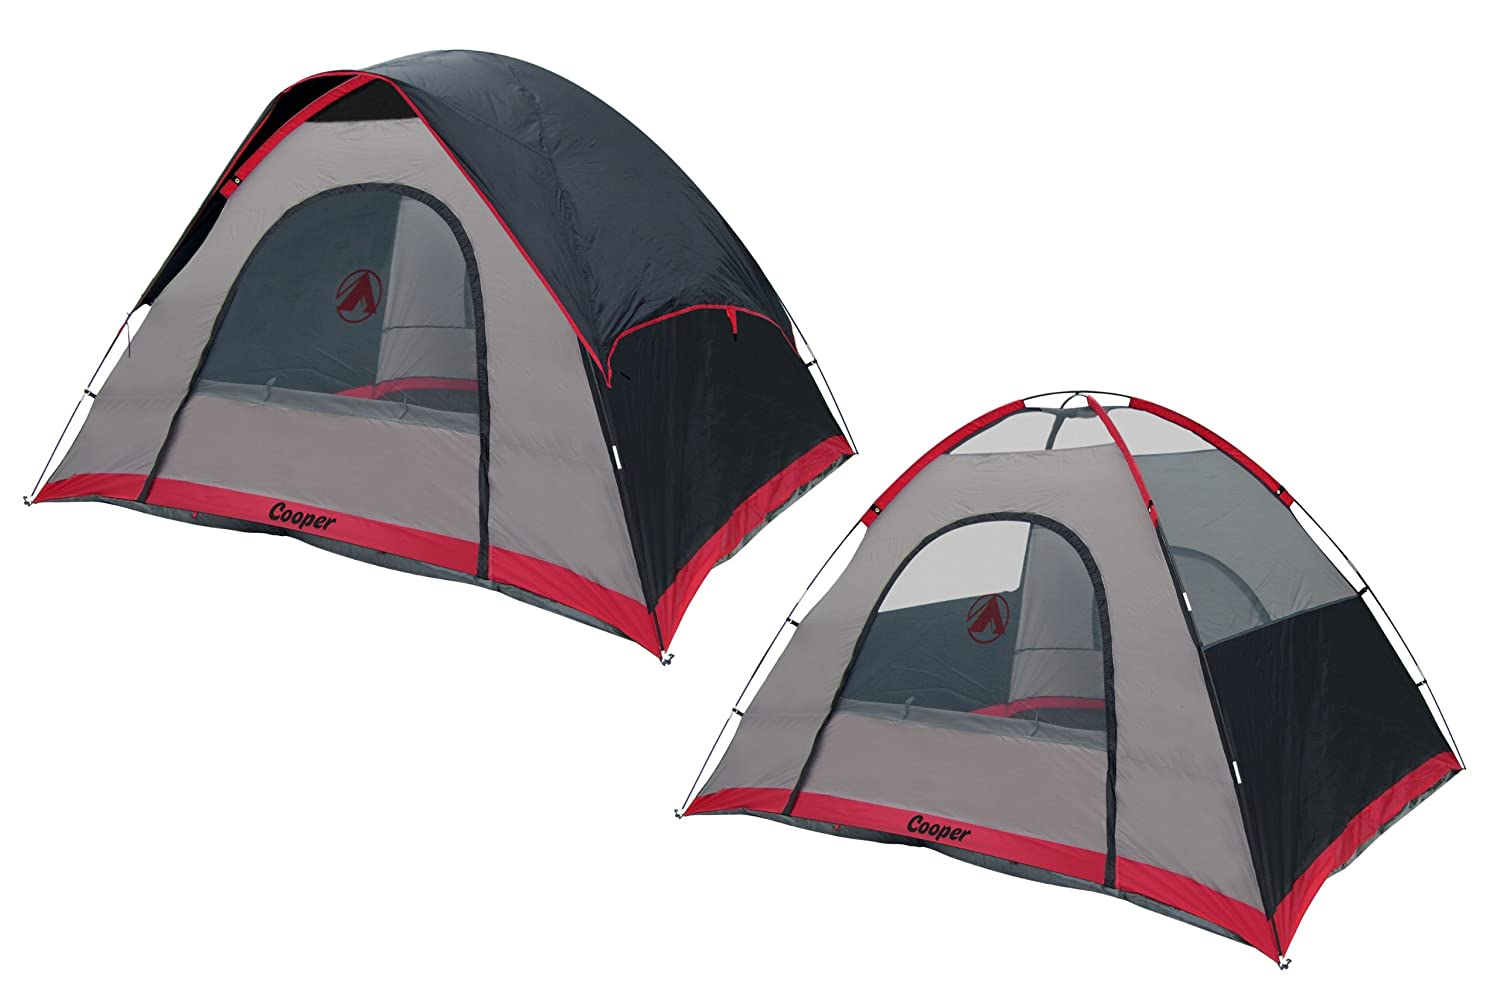 GigaTent Cooper Free Standing Family Dome Tent, 10 x 8-Feet x 71-Inch by GigaTent   B003O5QYK8